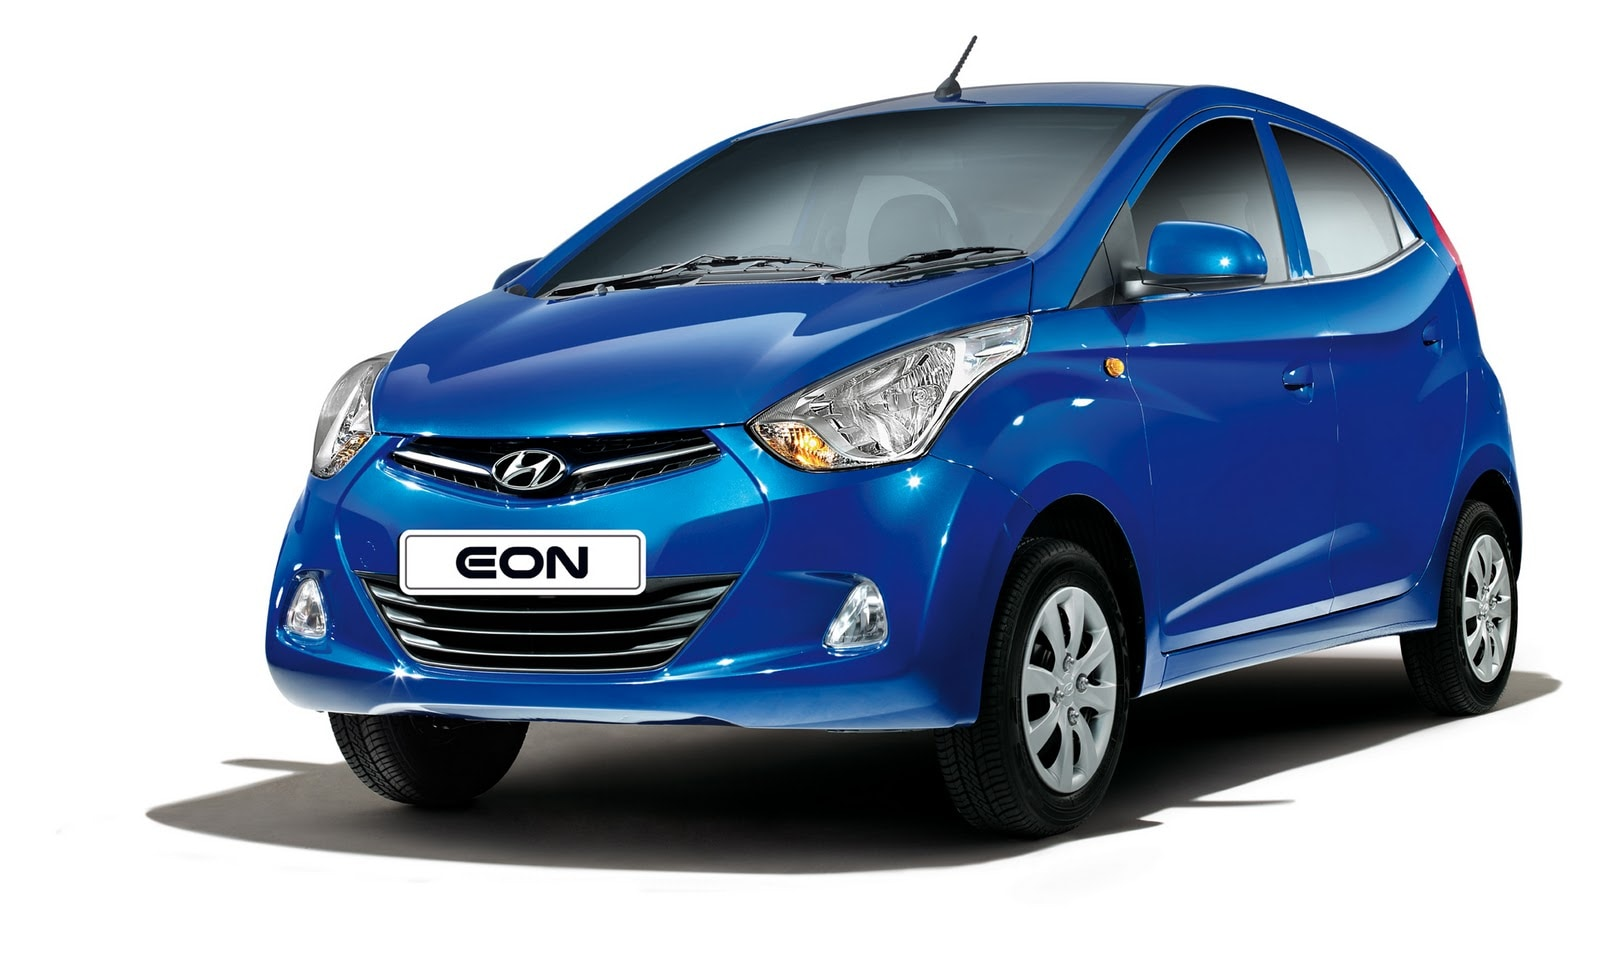 hyundai eon d lite price in india features car specifications review. Black Bedroom Furniture Sets. Home Design Ideas